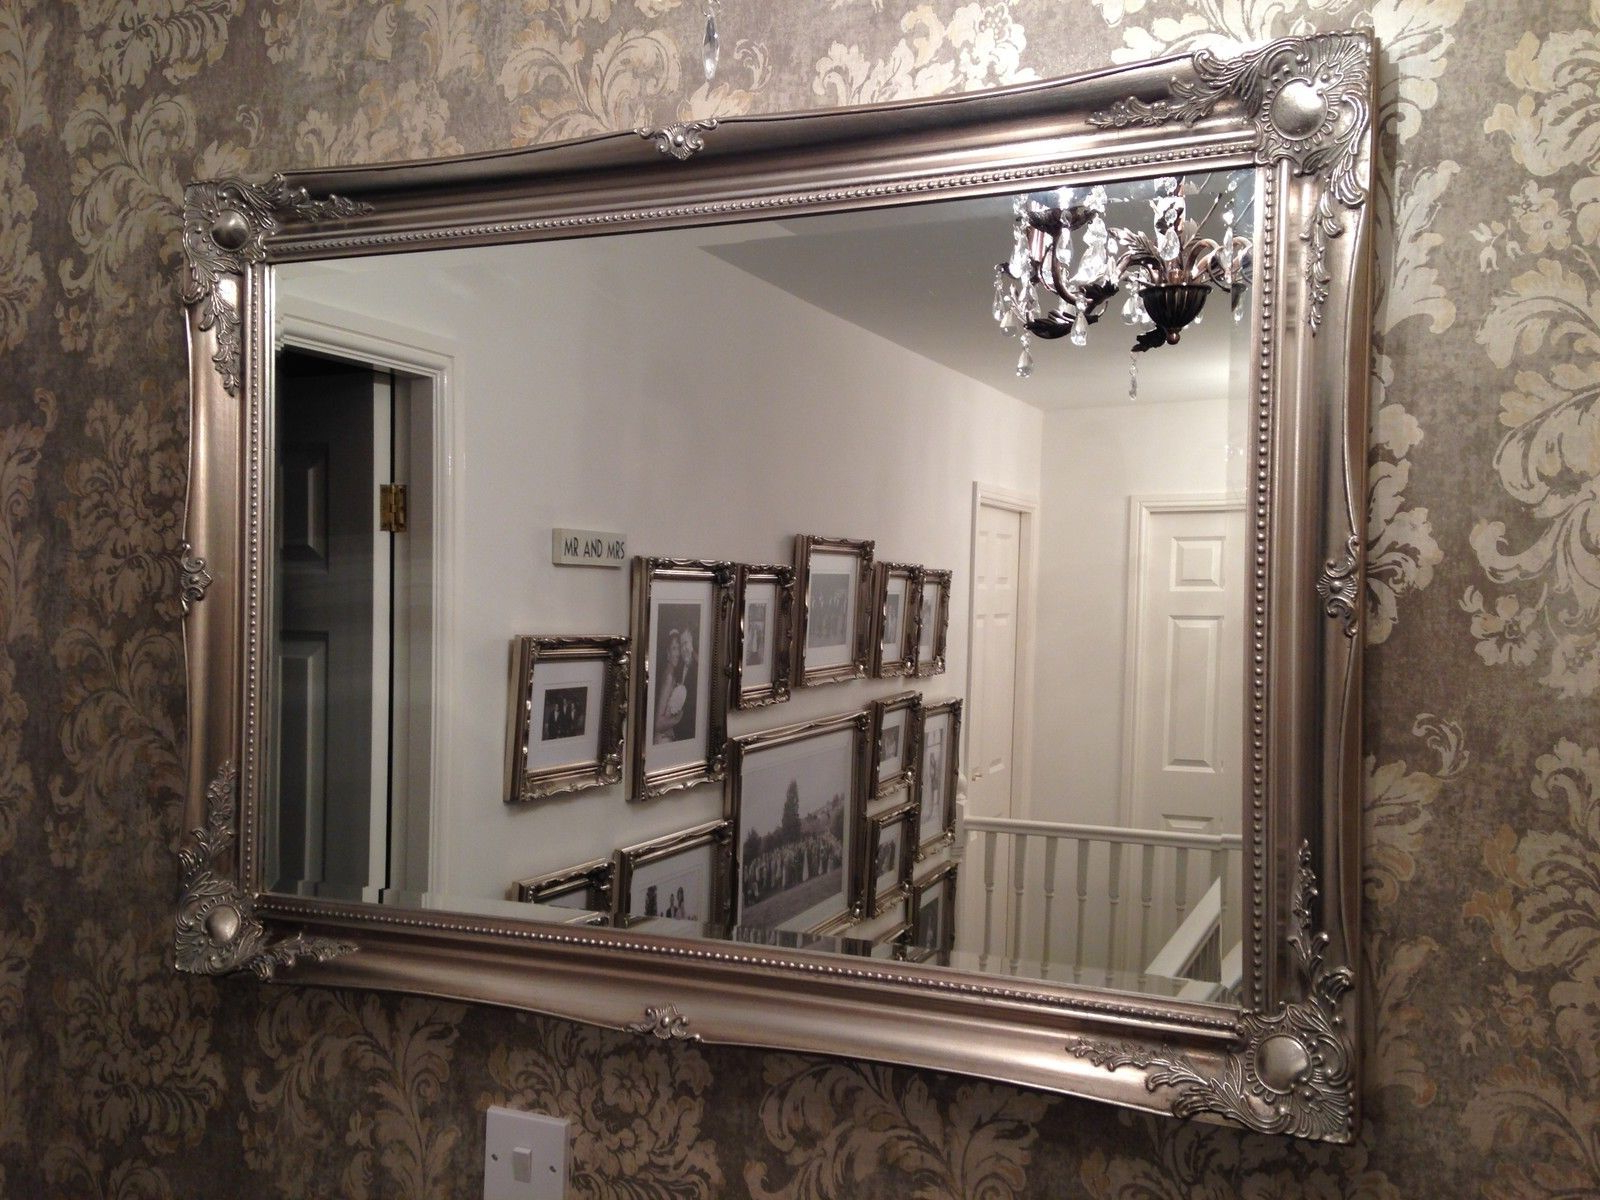 Big Wall Mirrors With Regard To Newest Oversized Rustic Wall Mirrors In Sterling Wade Abigail Round Large (View 11 of 20)